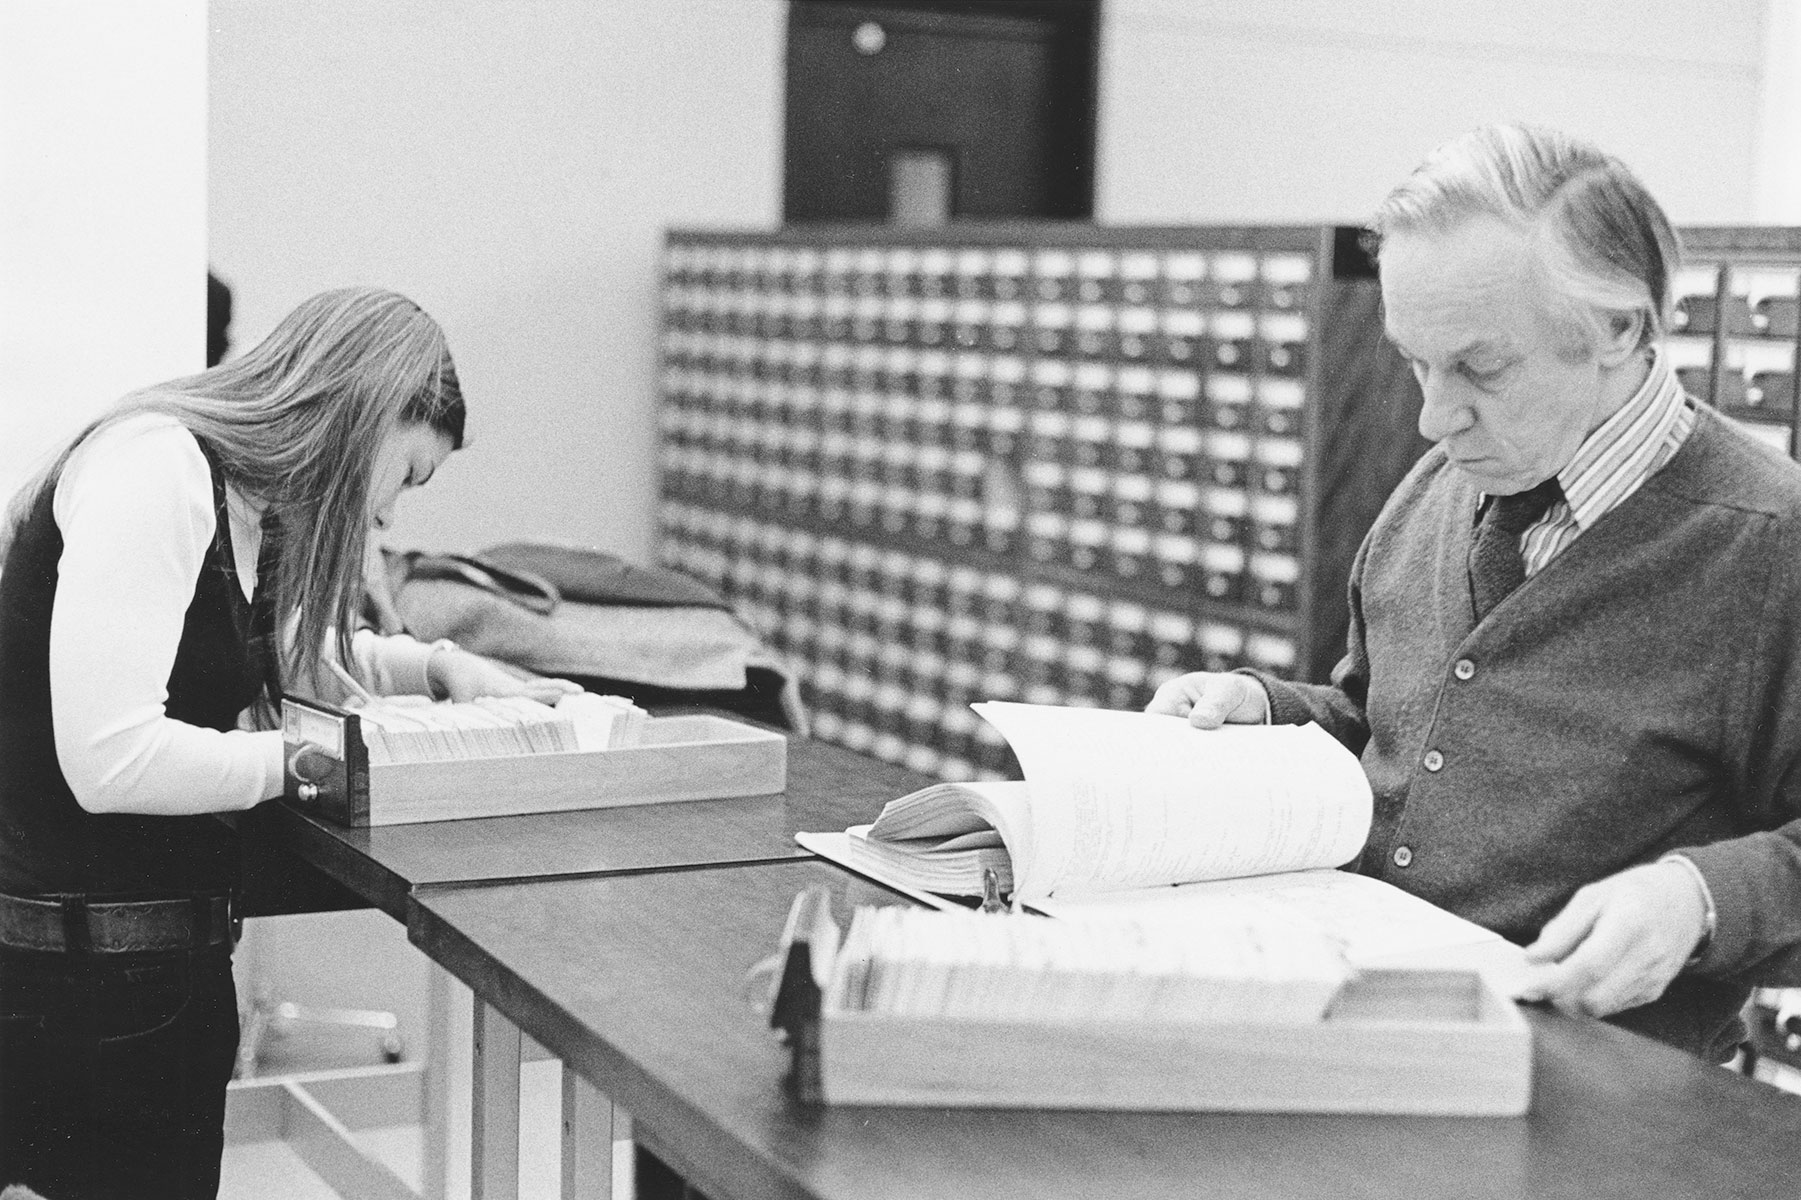 Researchers at the card catalog, circa 1970